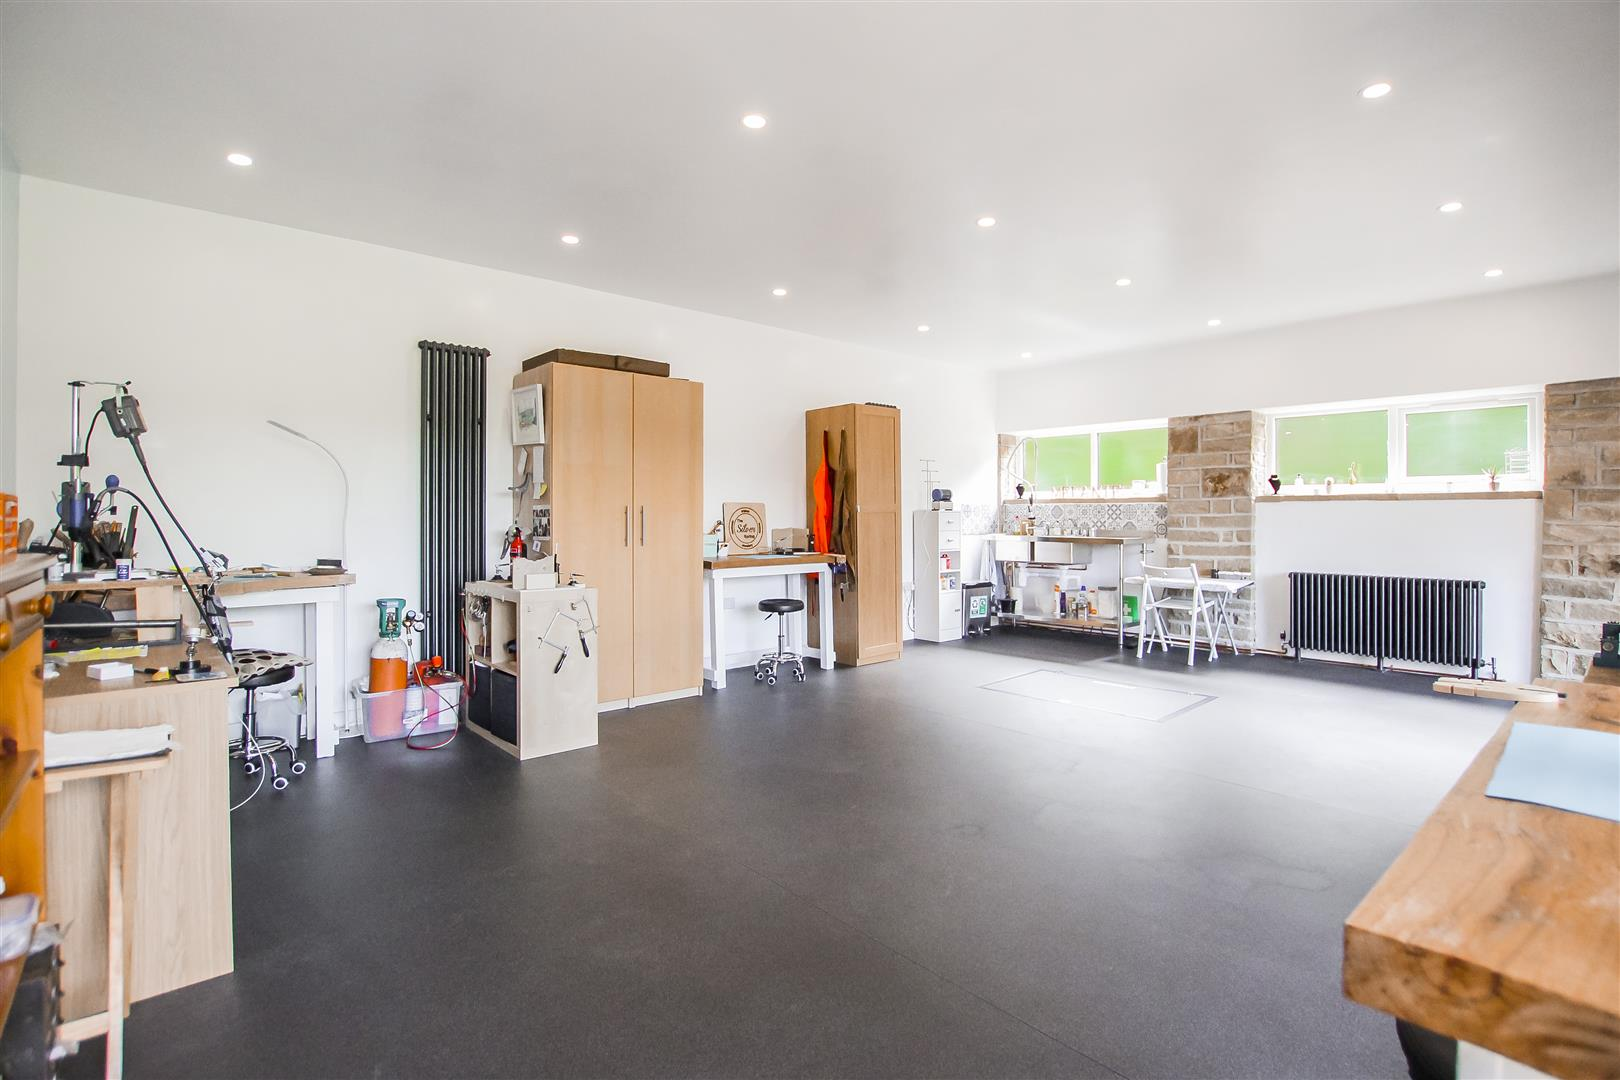 6 Bedroom Detached House For Sale - Hobby Room